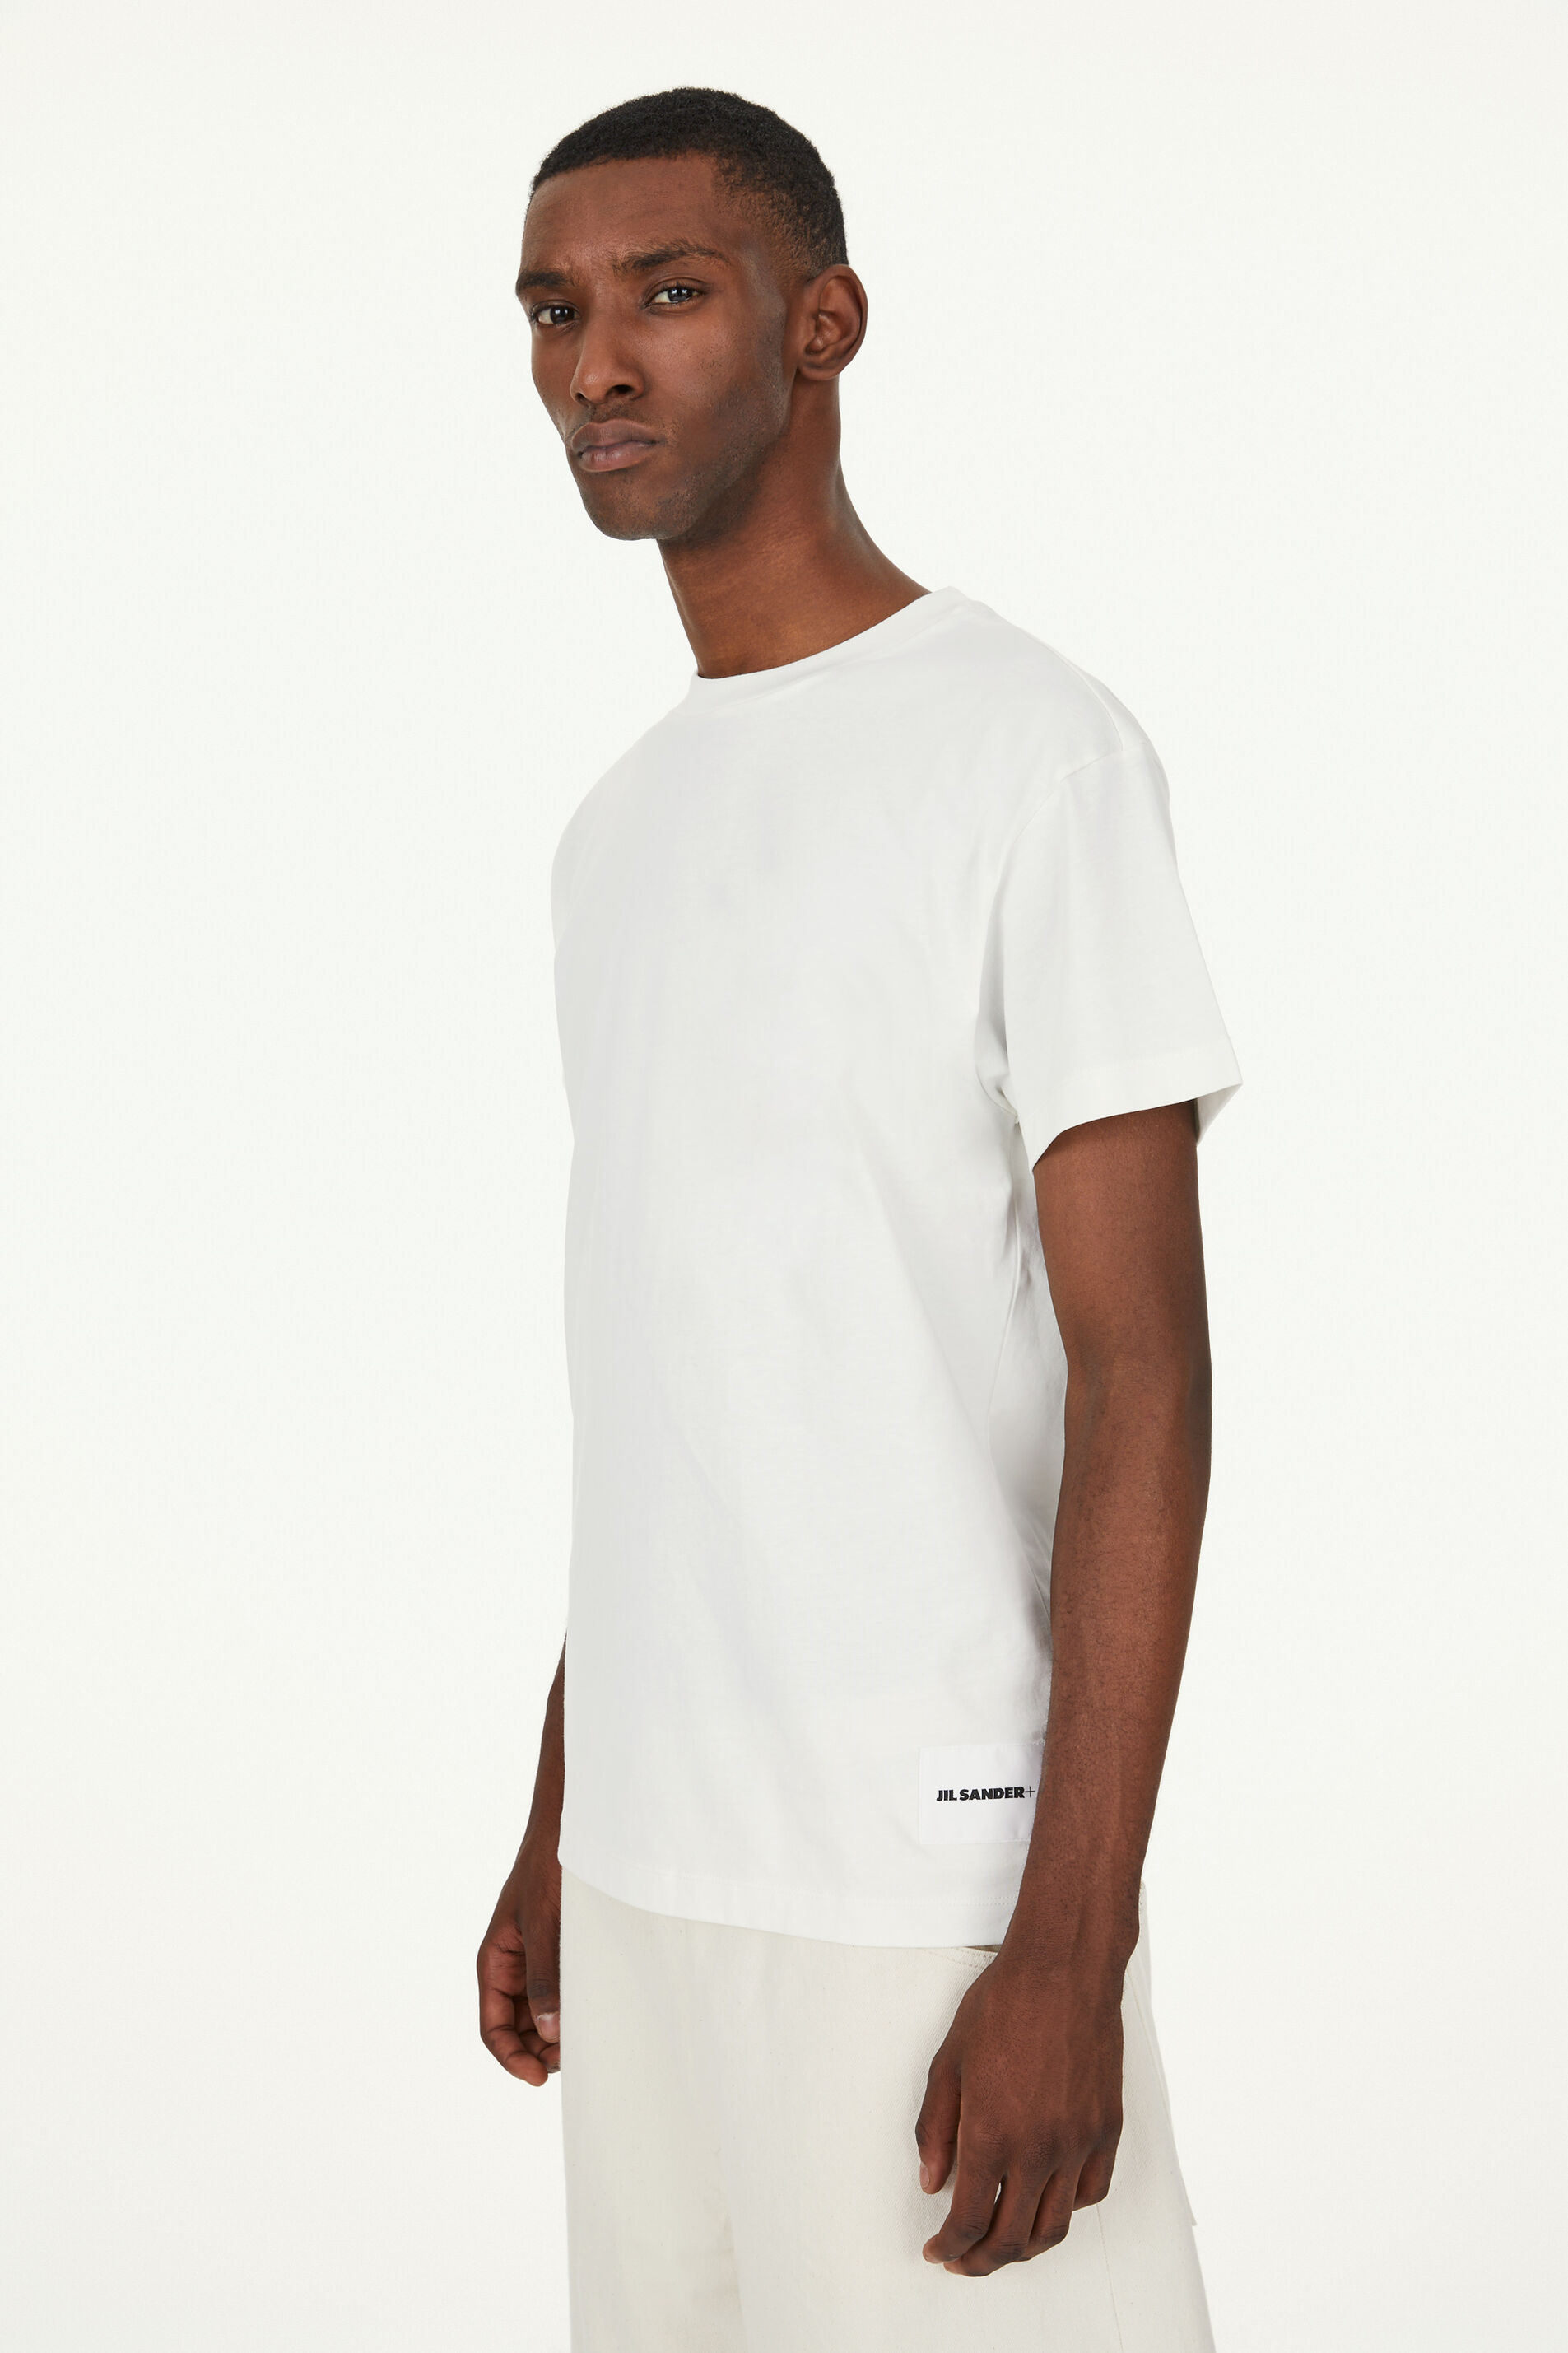 T-shirt Set, white, large